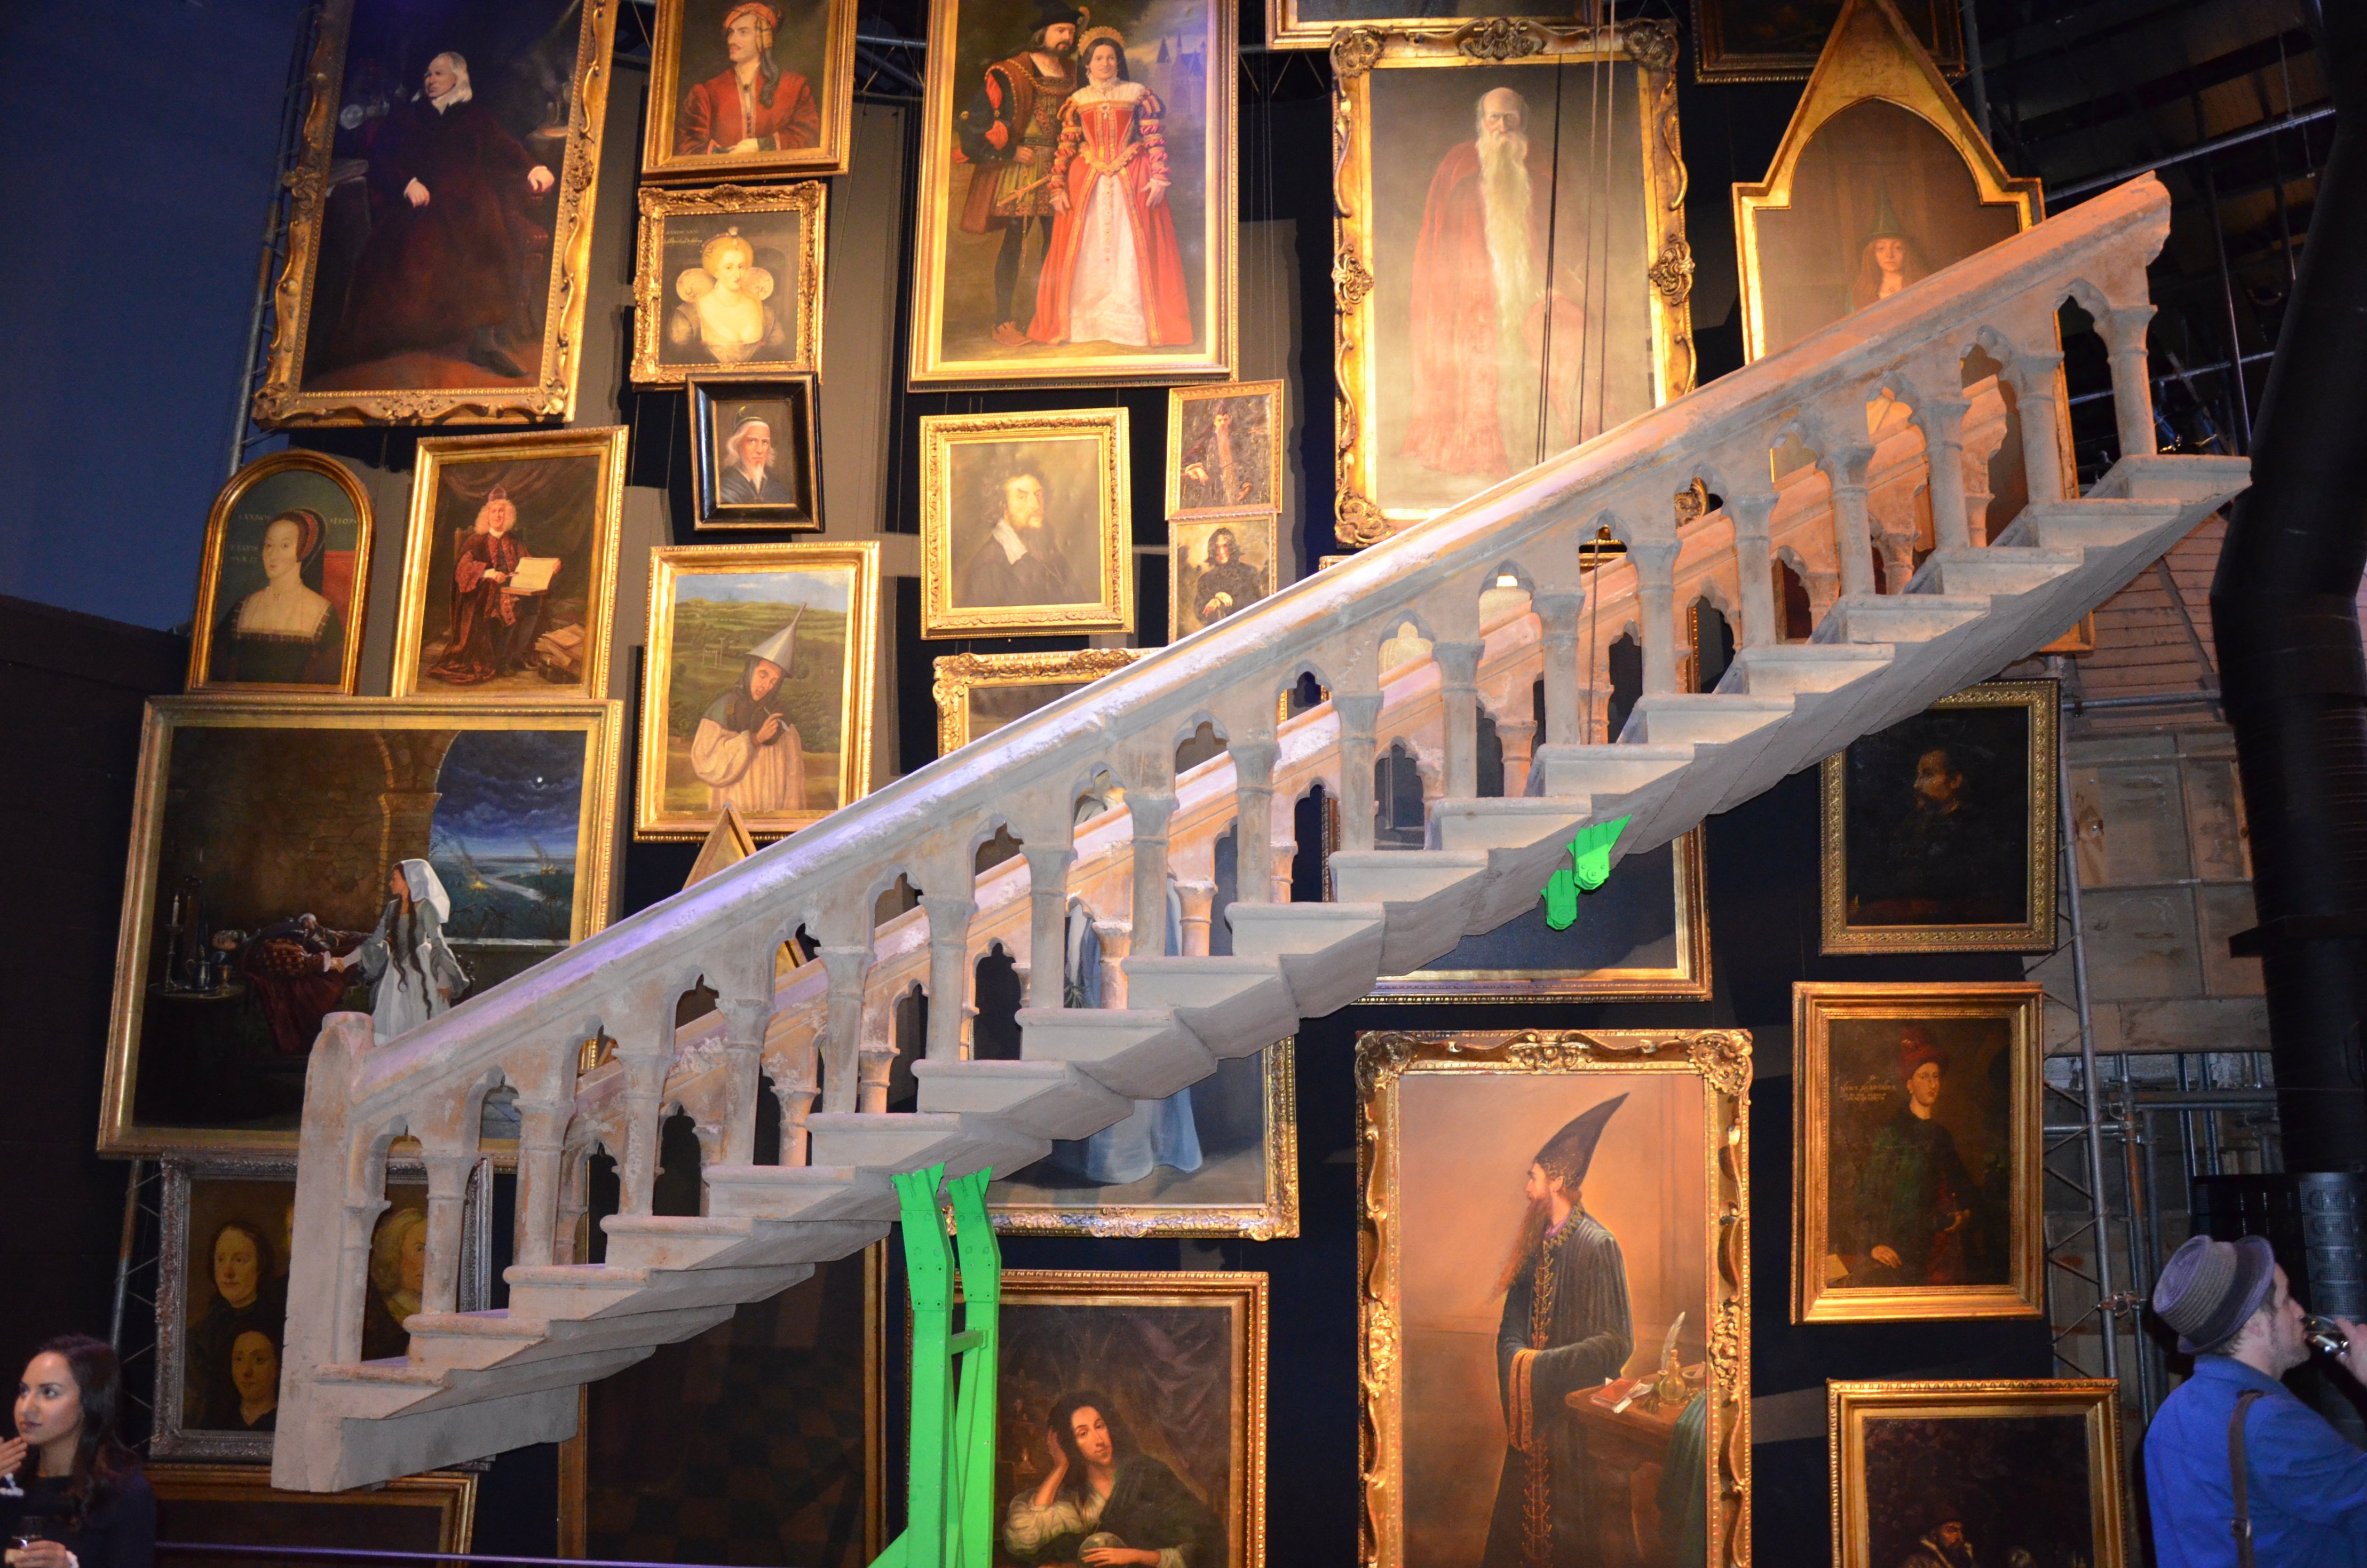 Grand Escalier de Poudlard et les portraits au Warner Bros Studio Tour London : the Making of Harry Potter